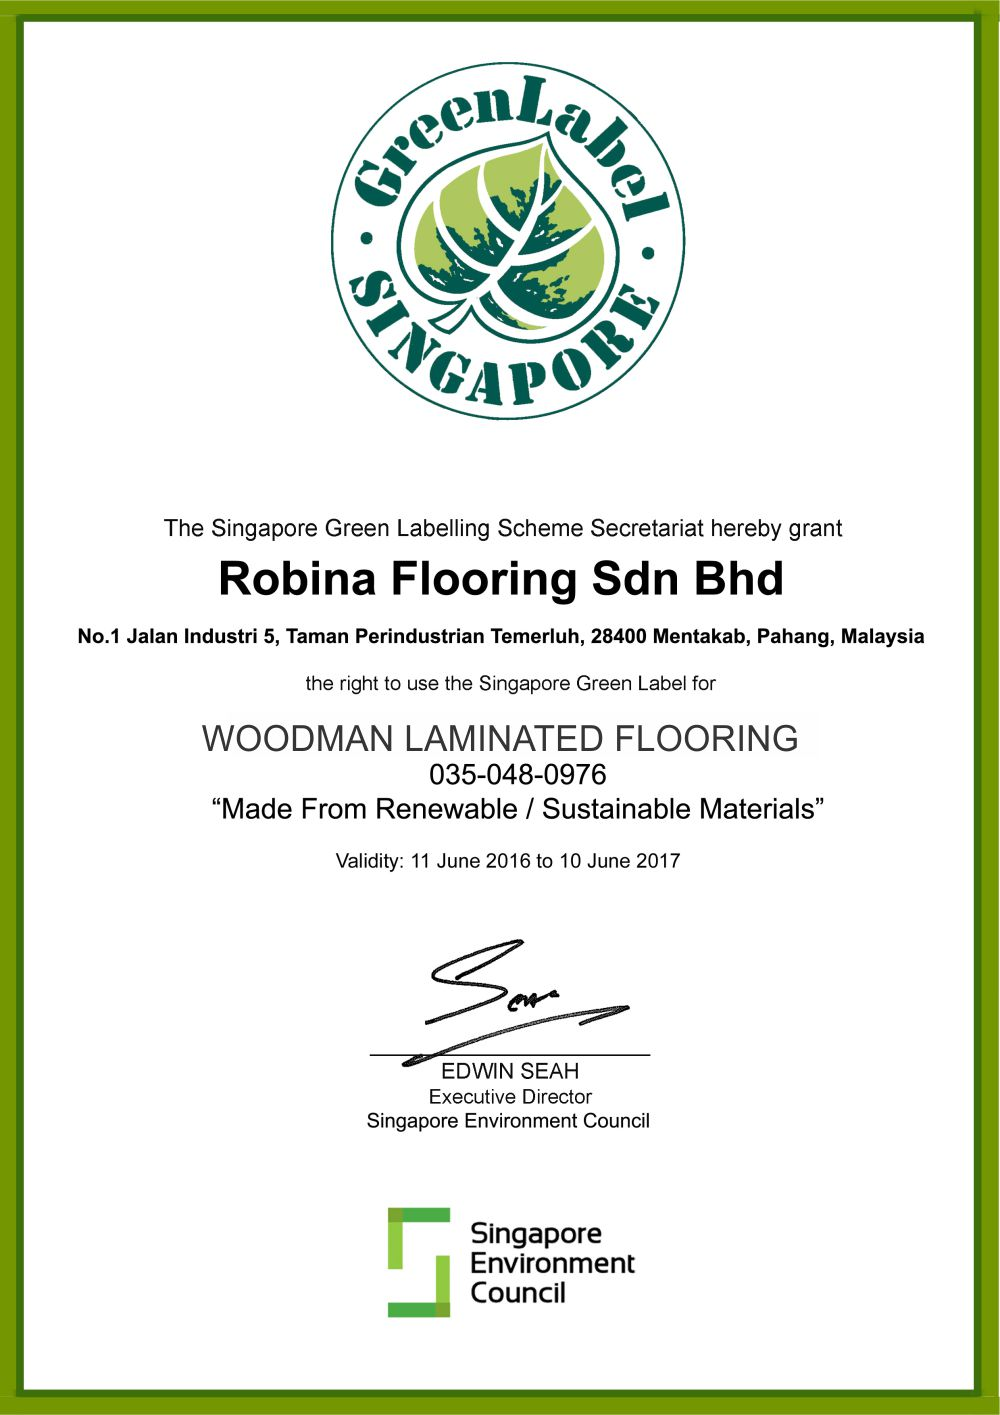 Singapore Green Label Scheme WOODMAN Laminated